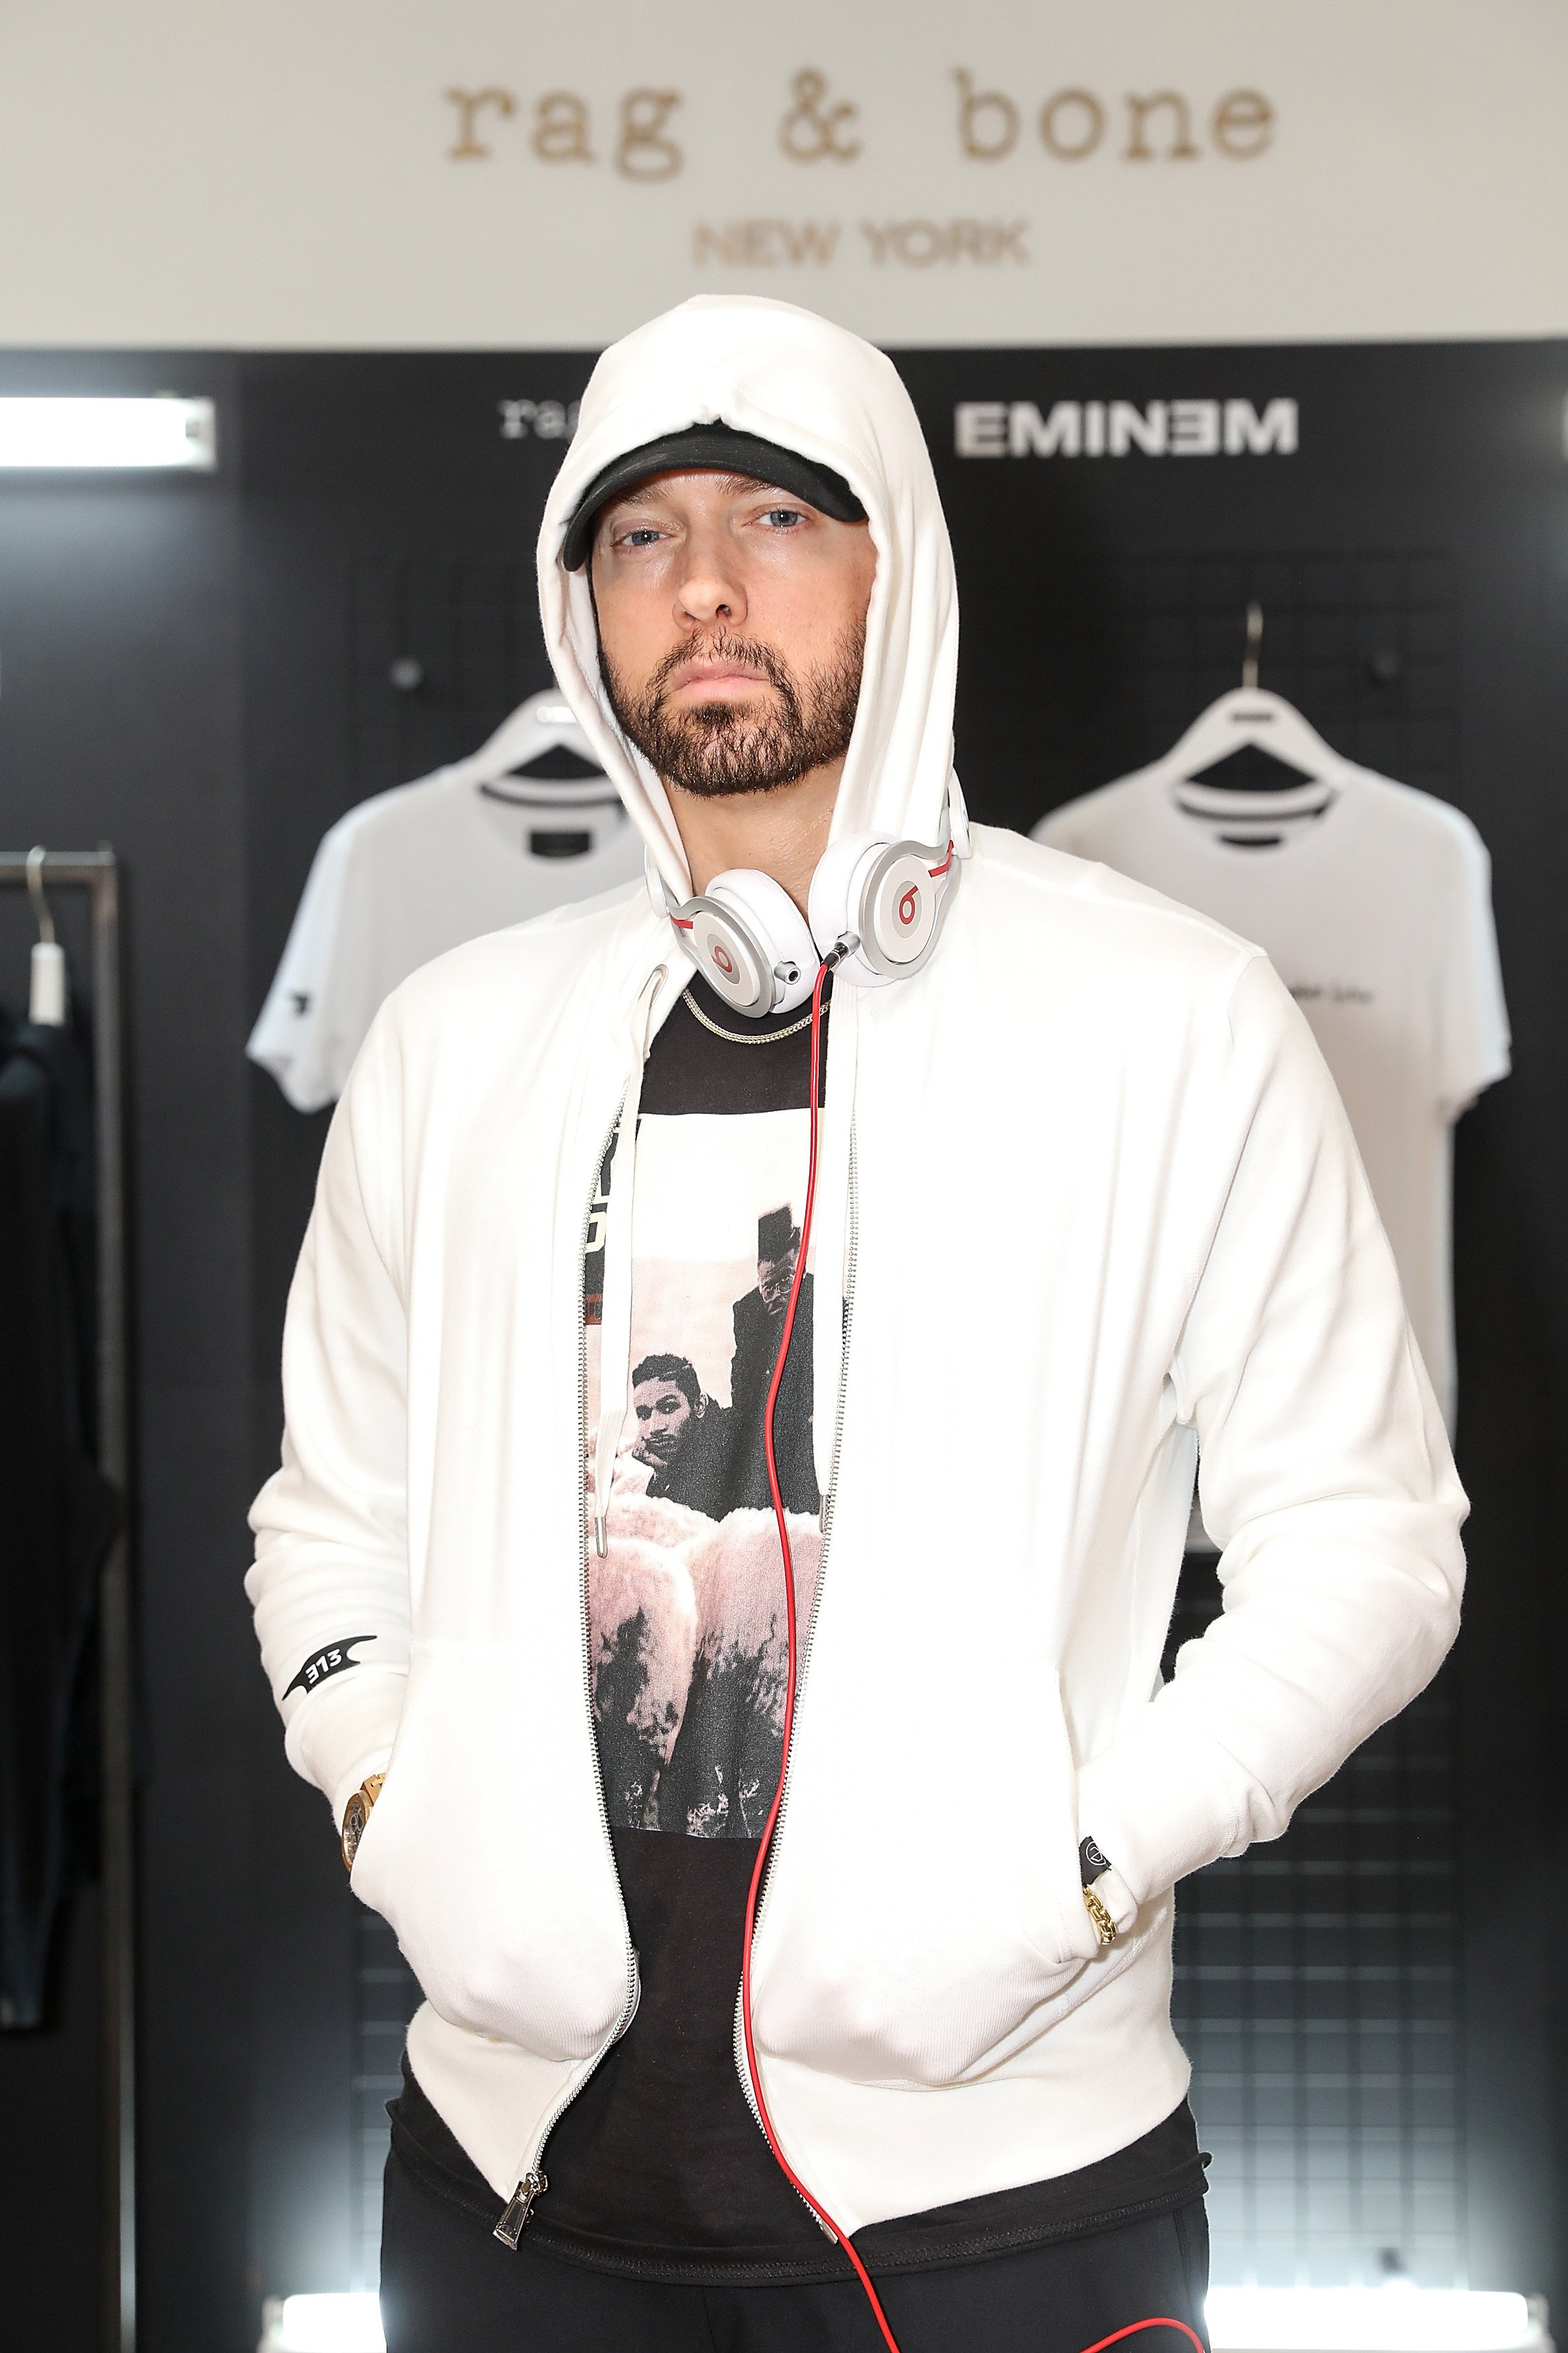 Eminem at the Rag & Bone X Eminem London Pop-Up Openin in London, England | Photo: Getty Images